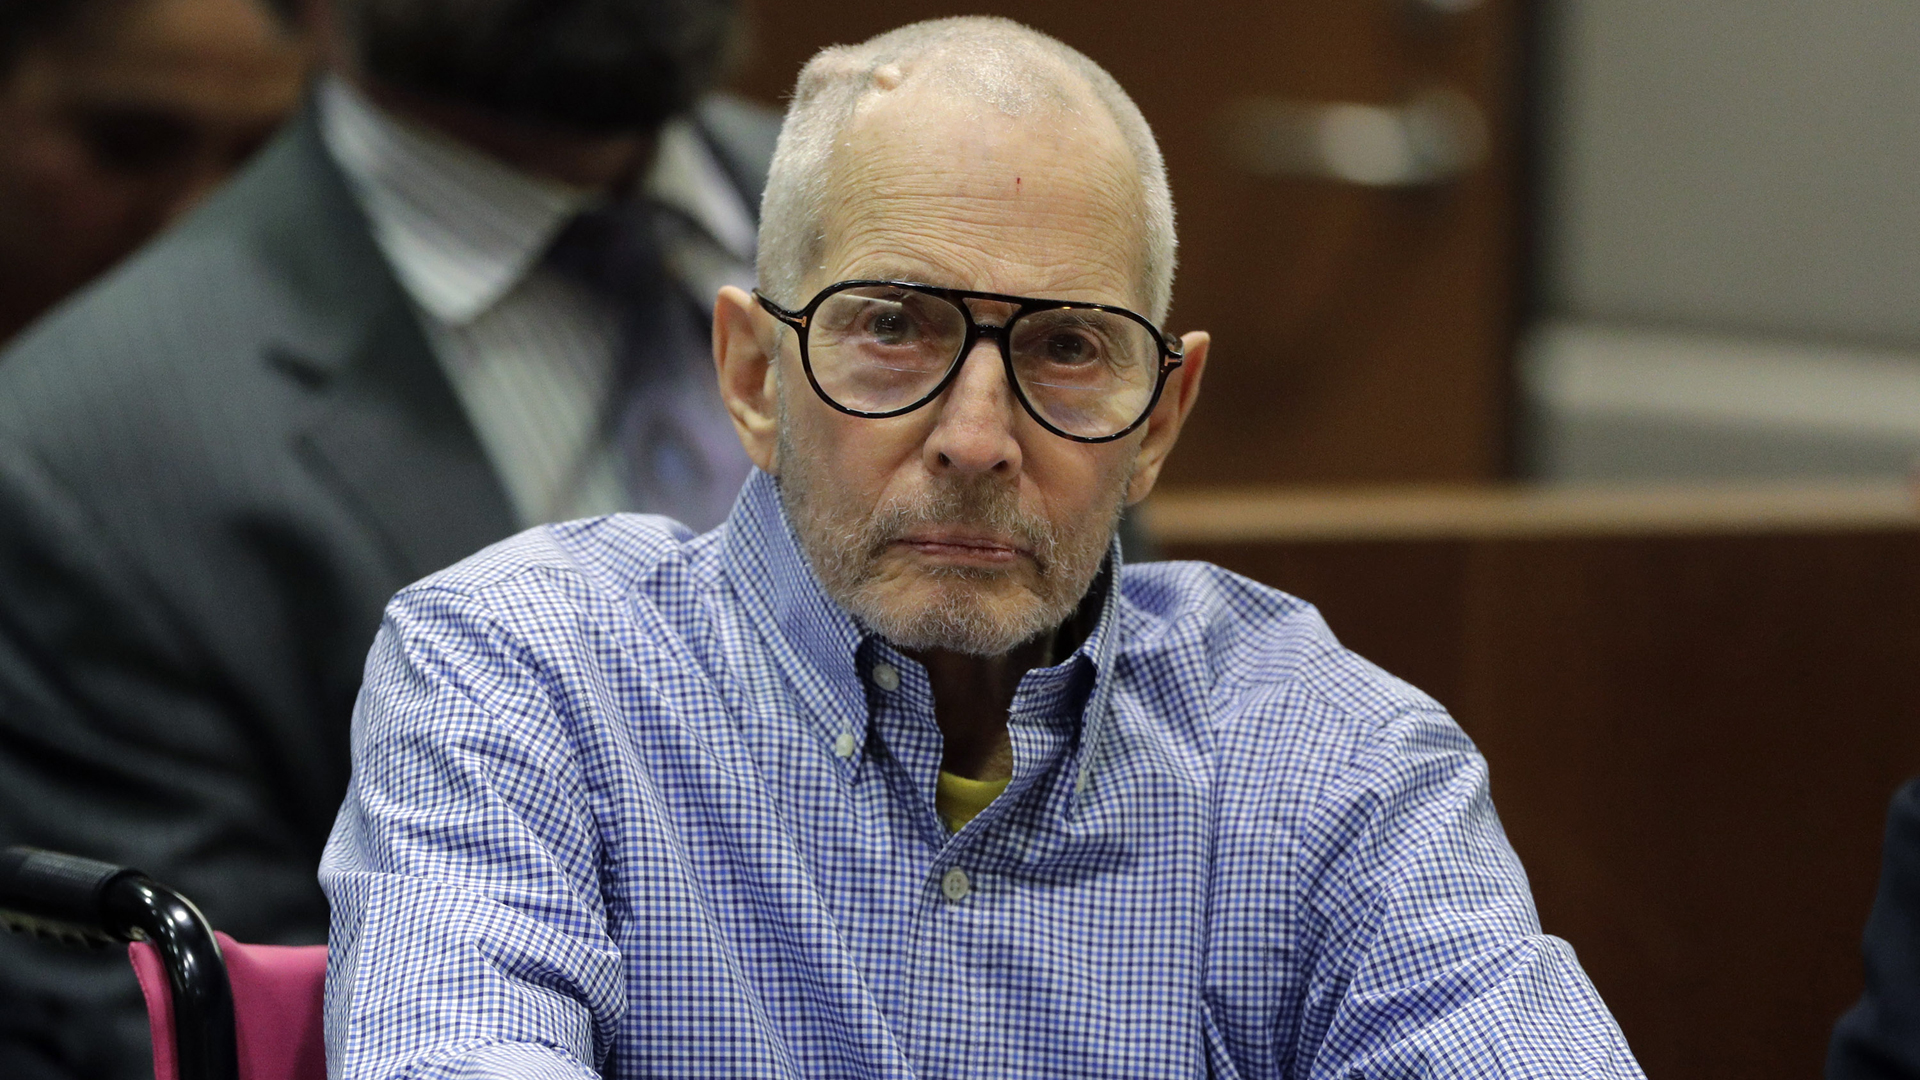 Real estate heir Robert Durst appears in the Airport Branch of the Los Angeles County Superior Court during a preliminary hearing on Dec. 21, 2016. (Credit: Jae C. Hong / Getty Images)